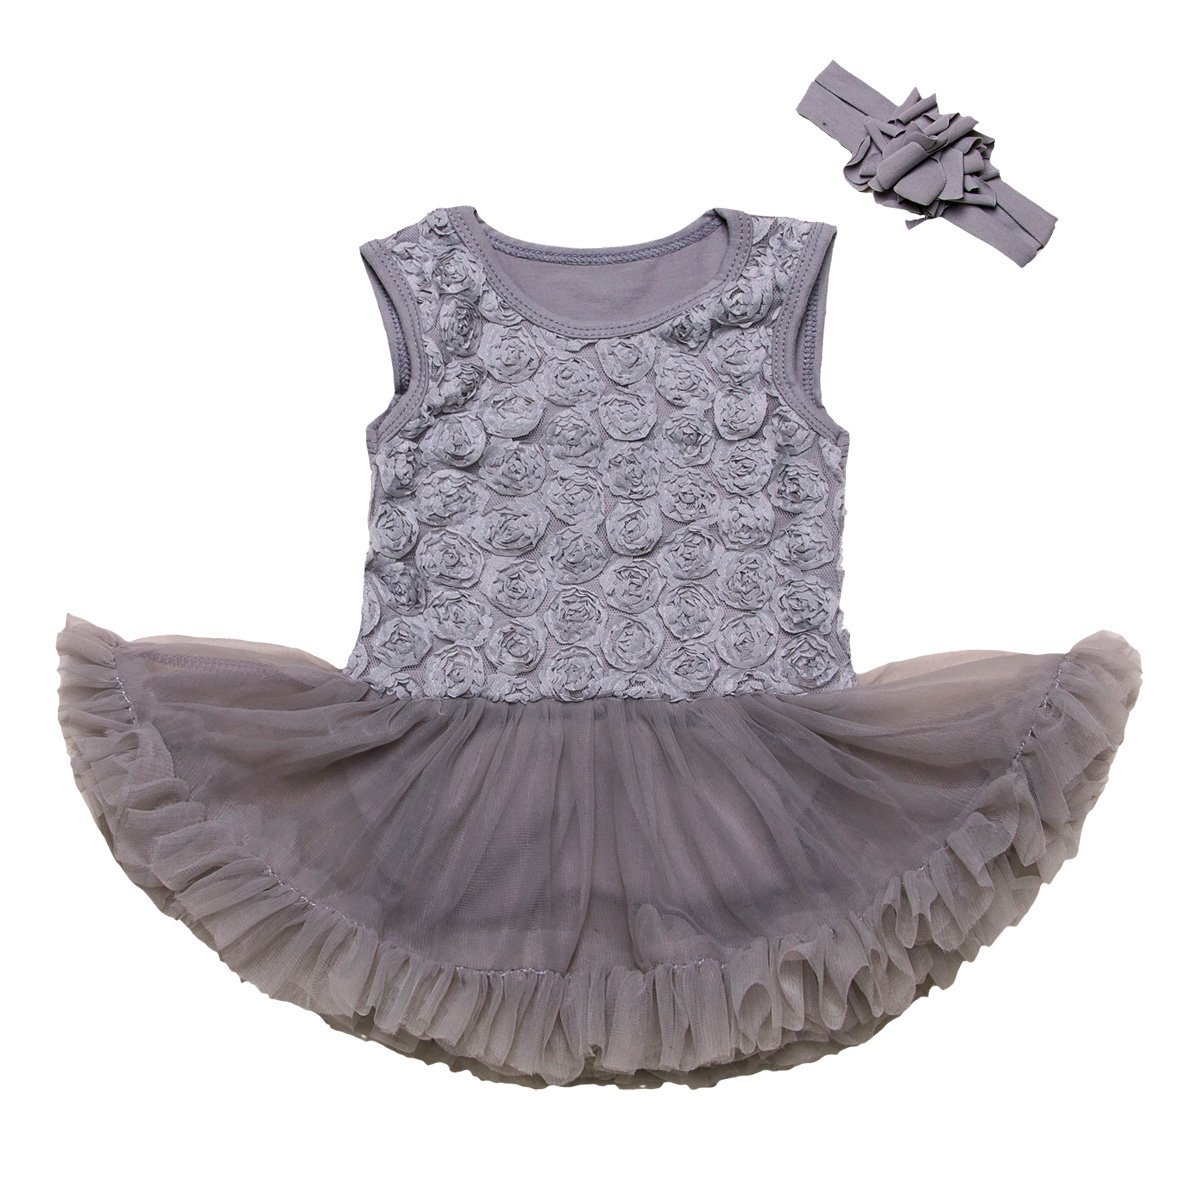 Mornyray 2 Pieces Baby Girl's Solid Color Rose Tutu Dress Sleeveless with Headband